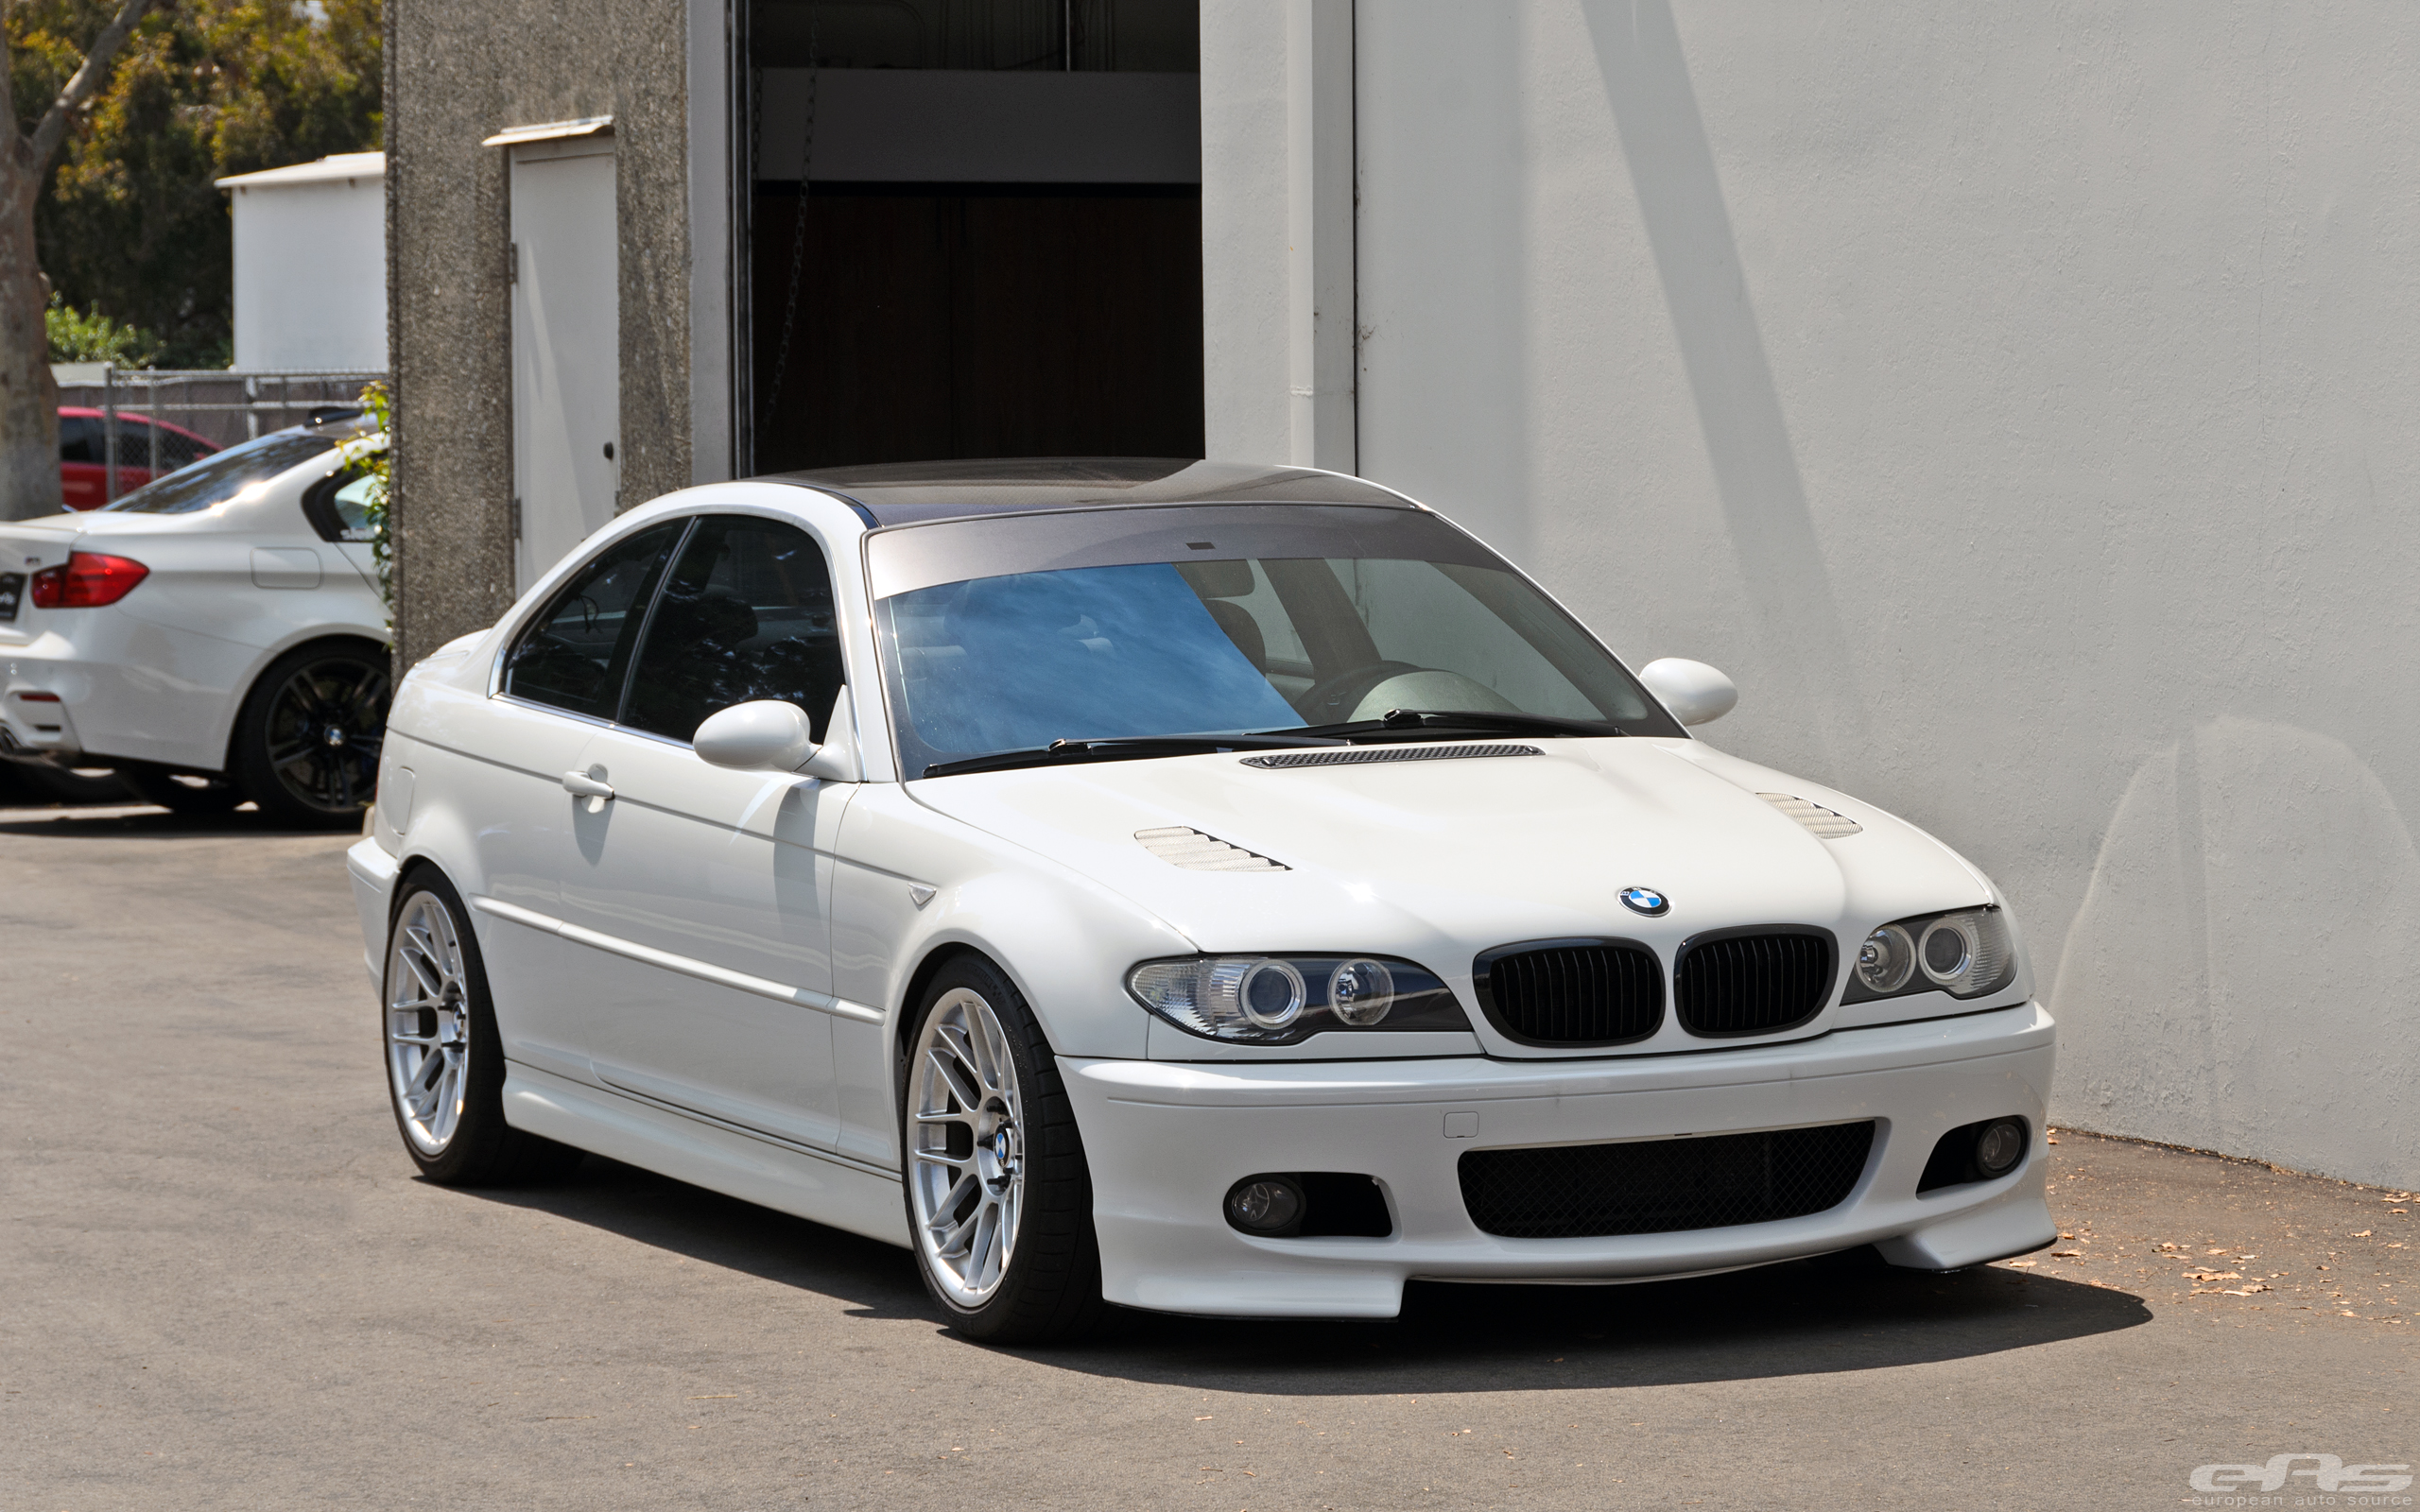 2004 Bmw 325ci Specs >> Clean BMW E46 330Ci Has More than One Ace up its Sleeve - autoevolution